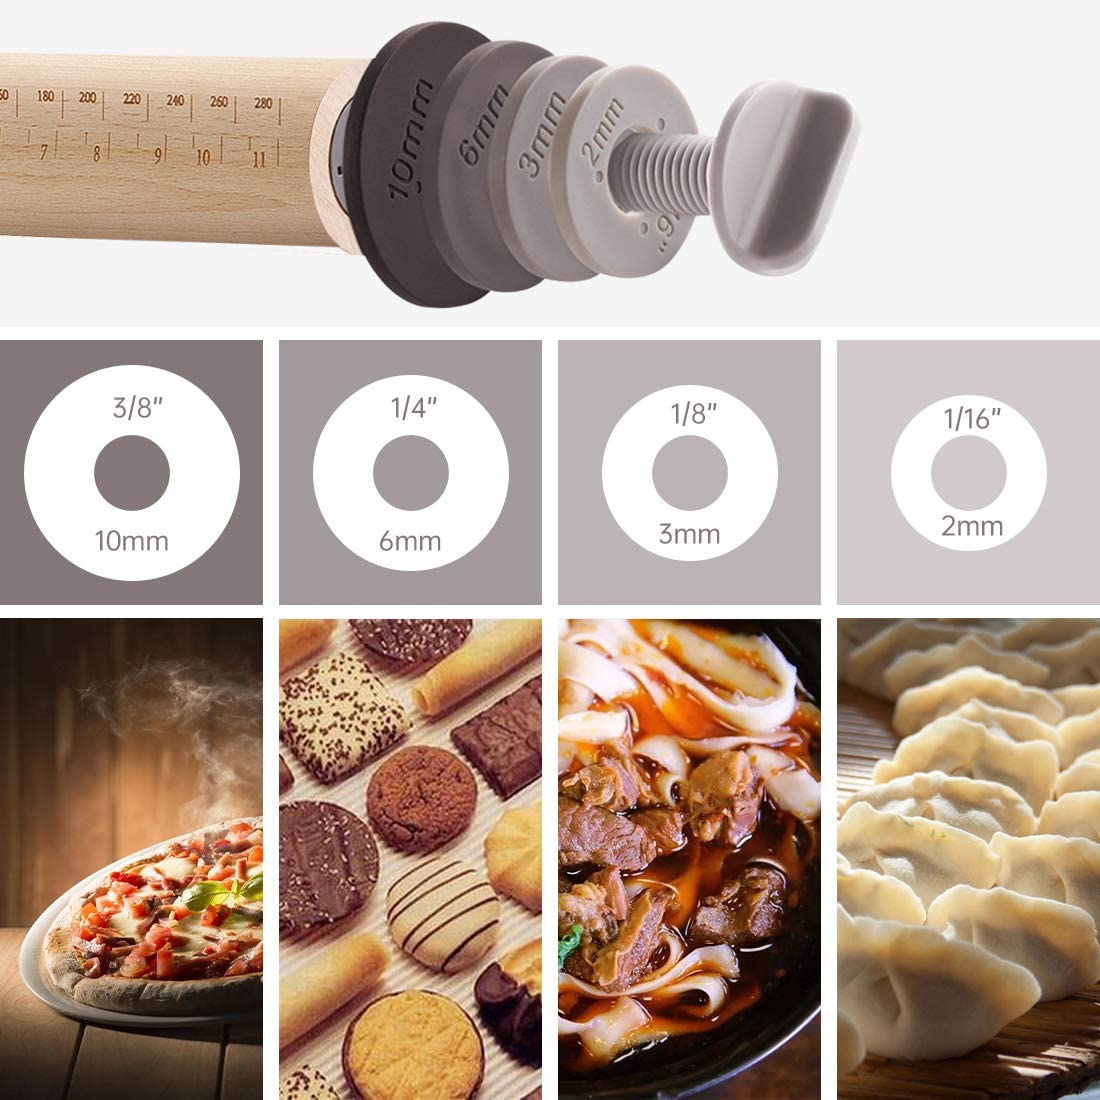 colour) Beech Wood Rolling Pin for Baking Pizza Pastries Wood Rolling Pin Cookies Adjustable Rolling Pin with Removable Thickness Rings